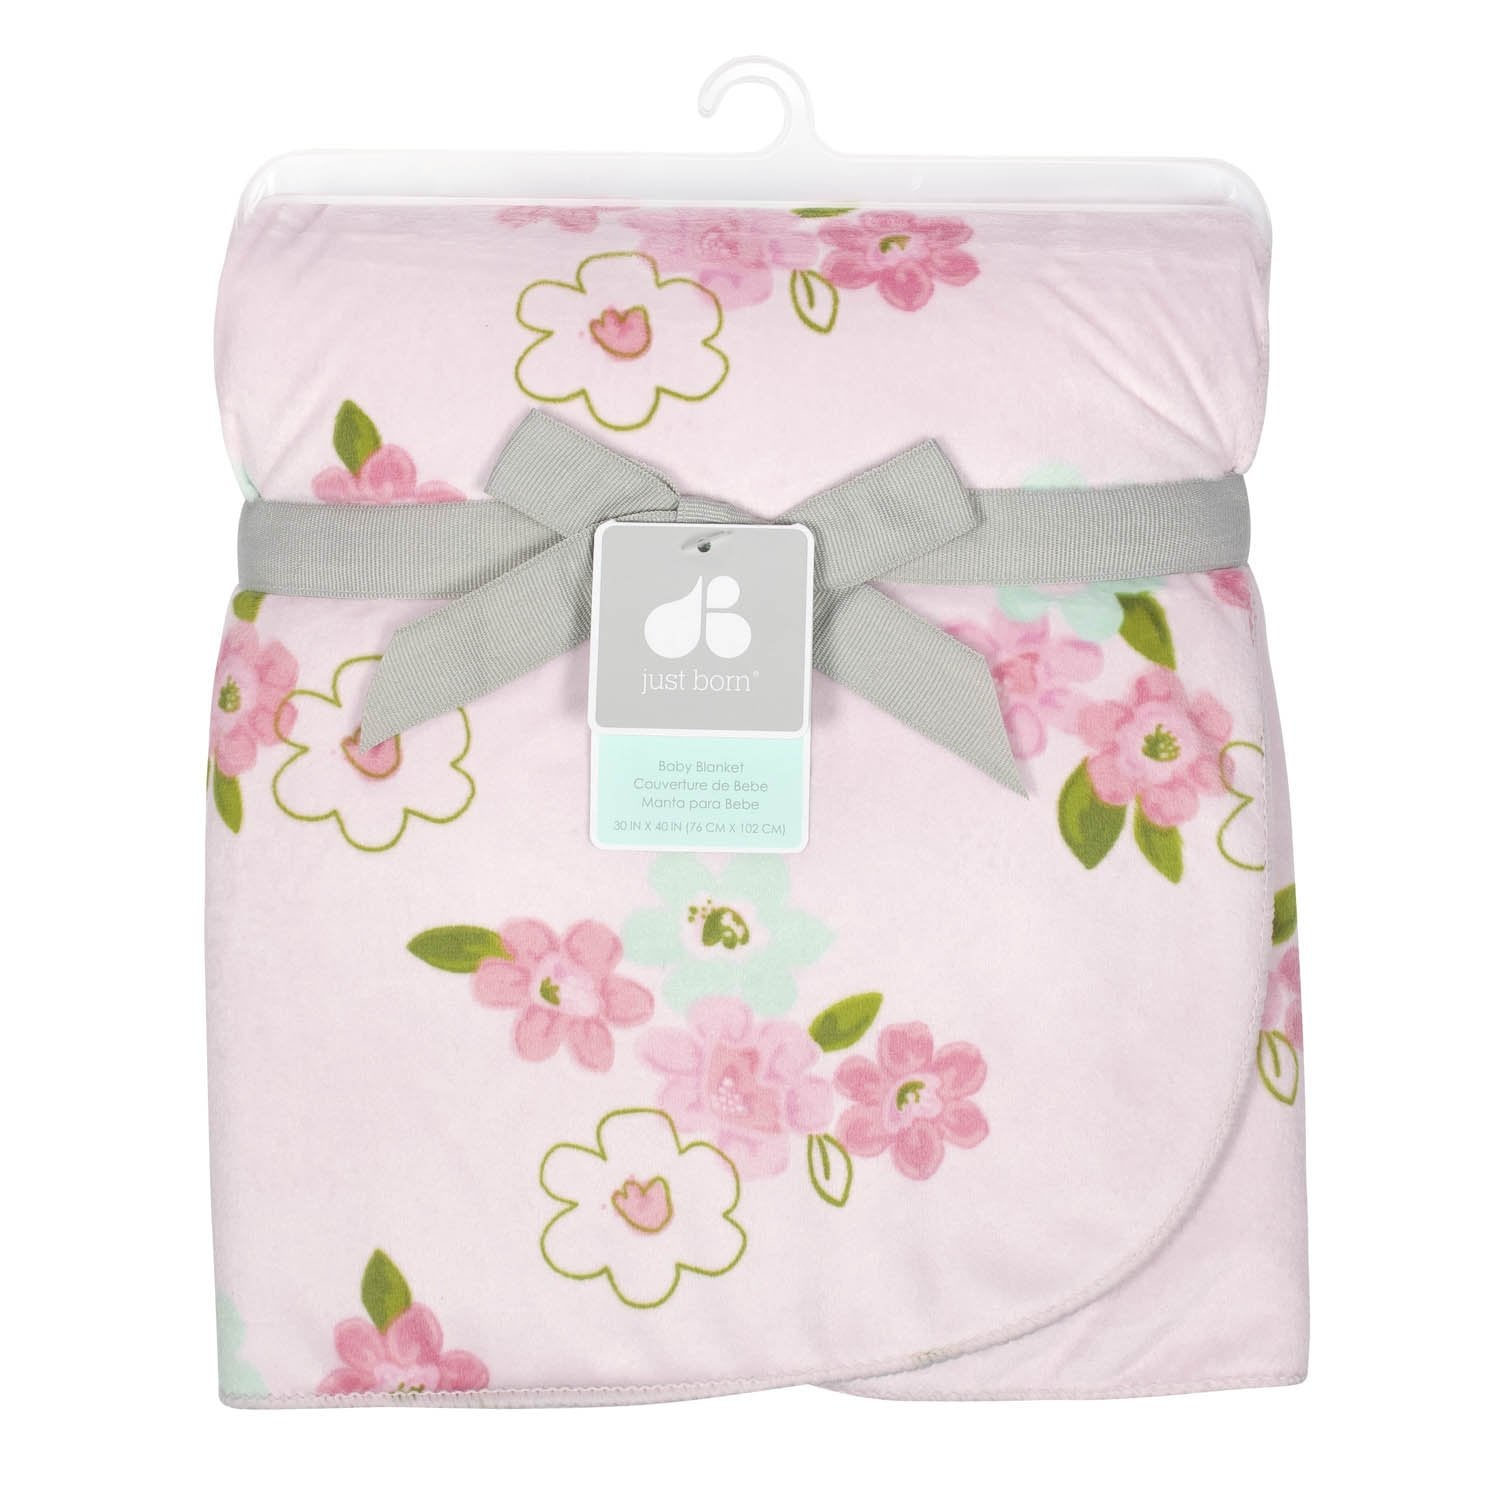 Just Born One World Collection Plush Blanket - Blossom-Gerber Childrenswear